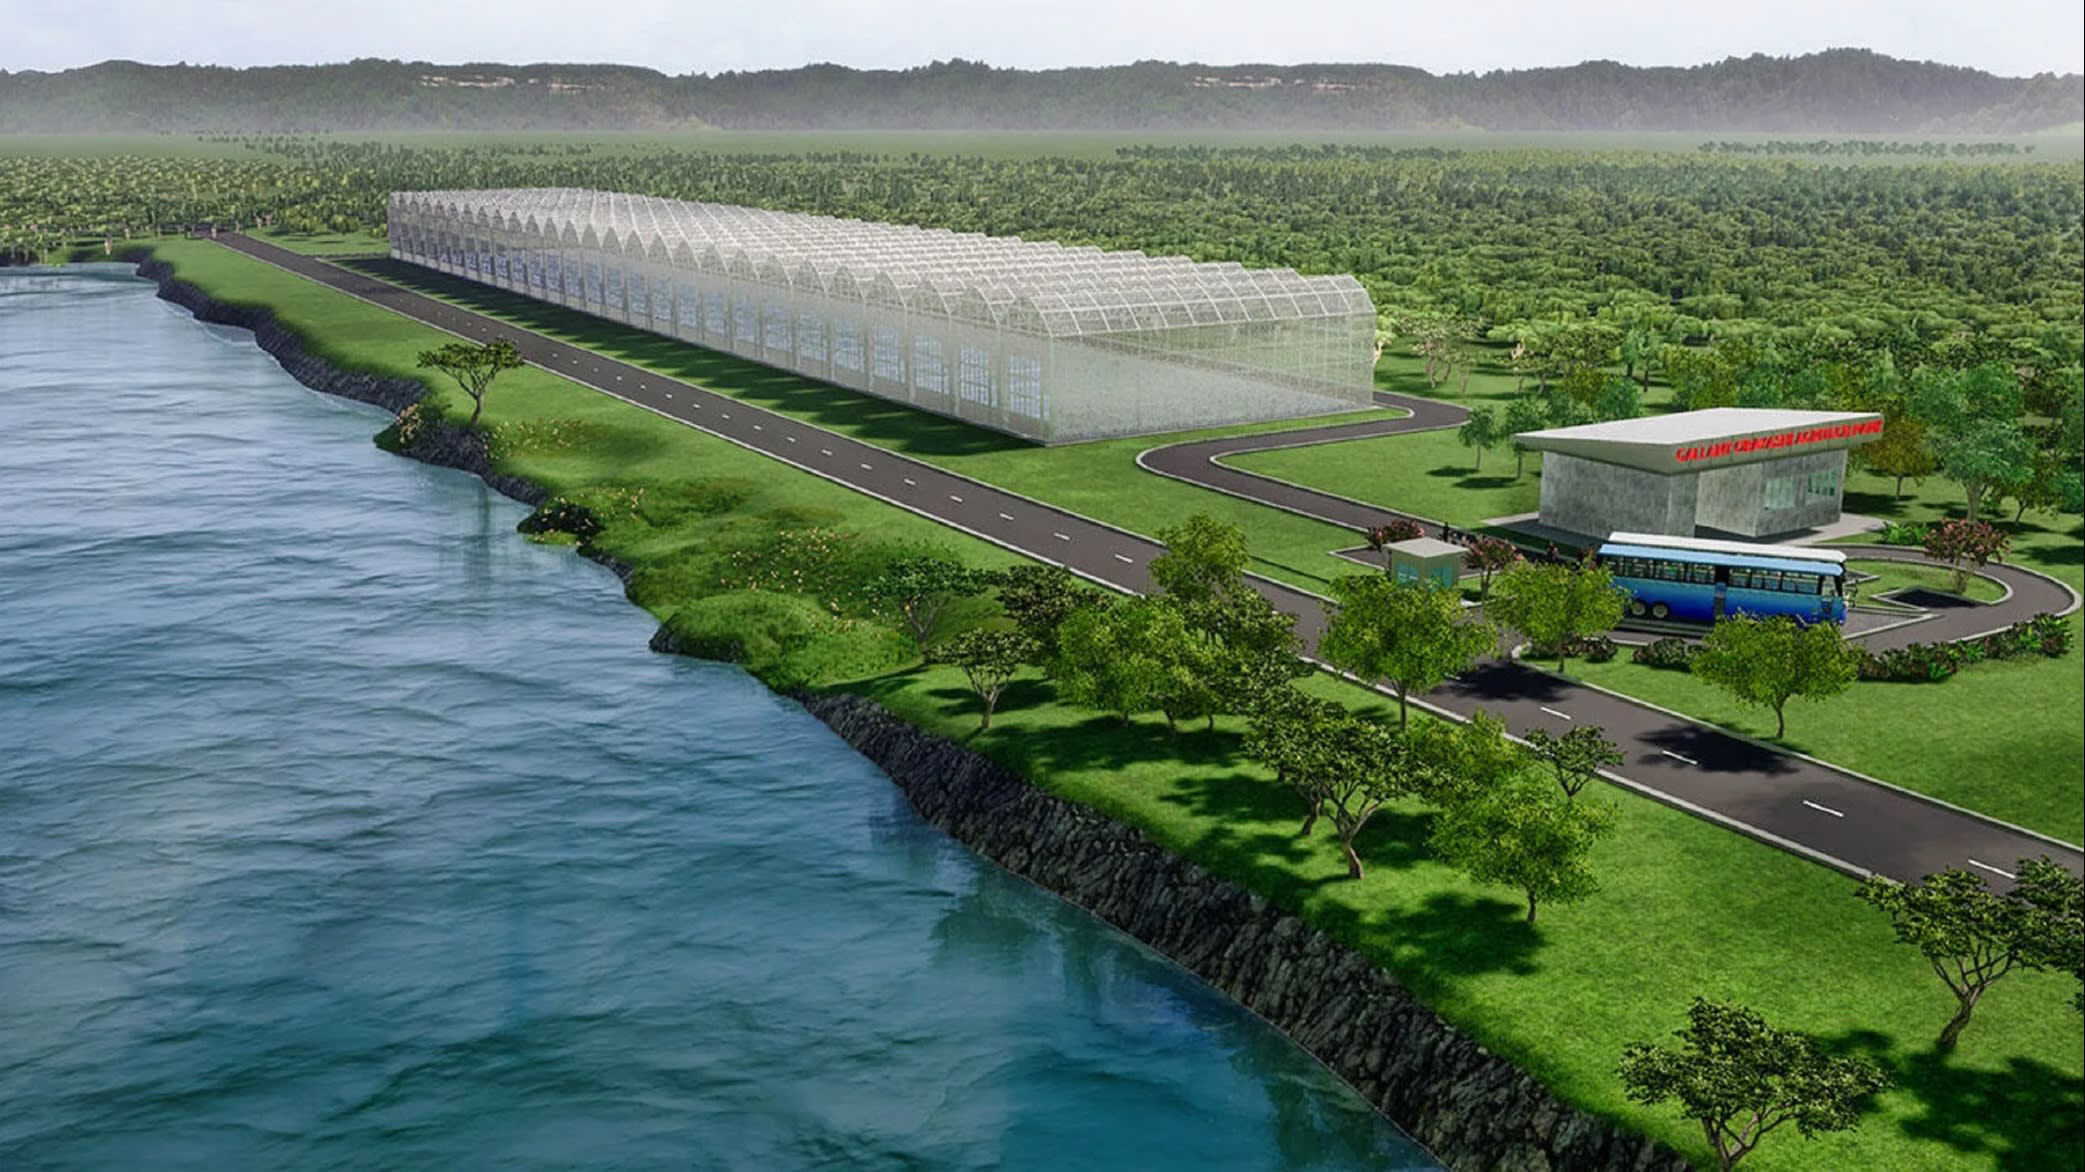 An image of the vegetable facility planned for northern Indonesia. Image: Nikkei Asian Review